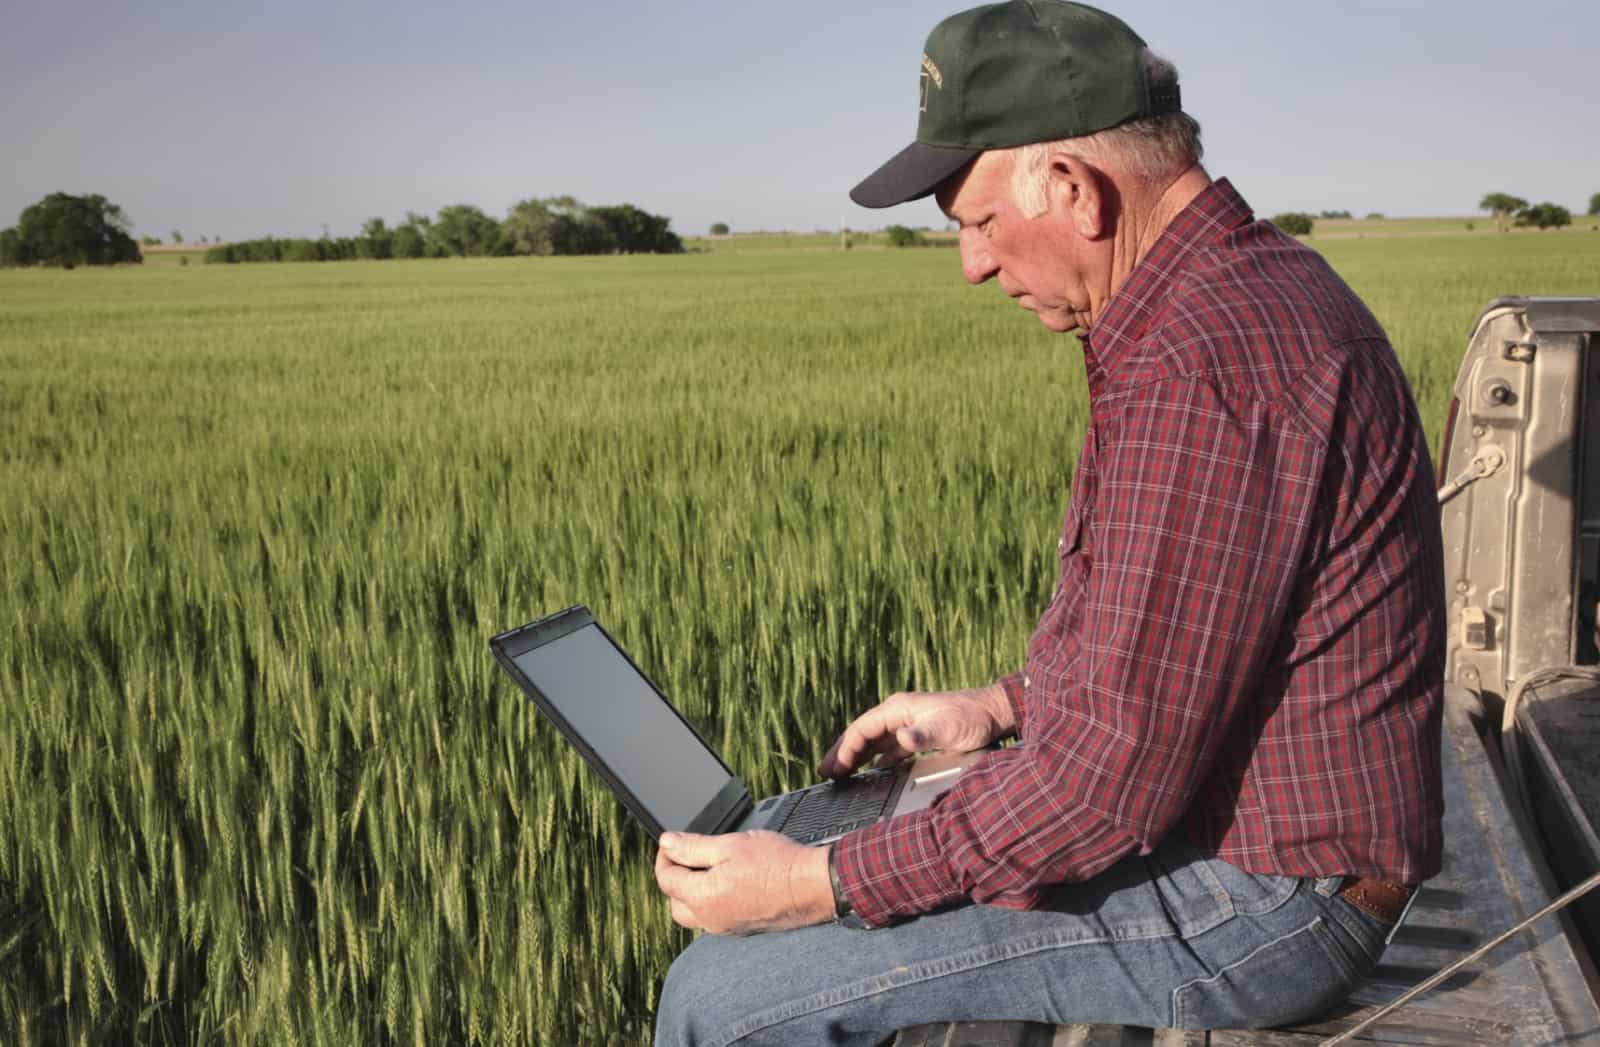 using precision agriculture technology to monitor plant health